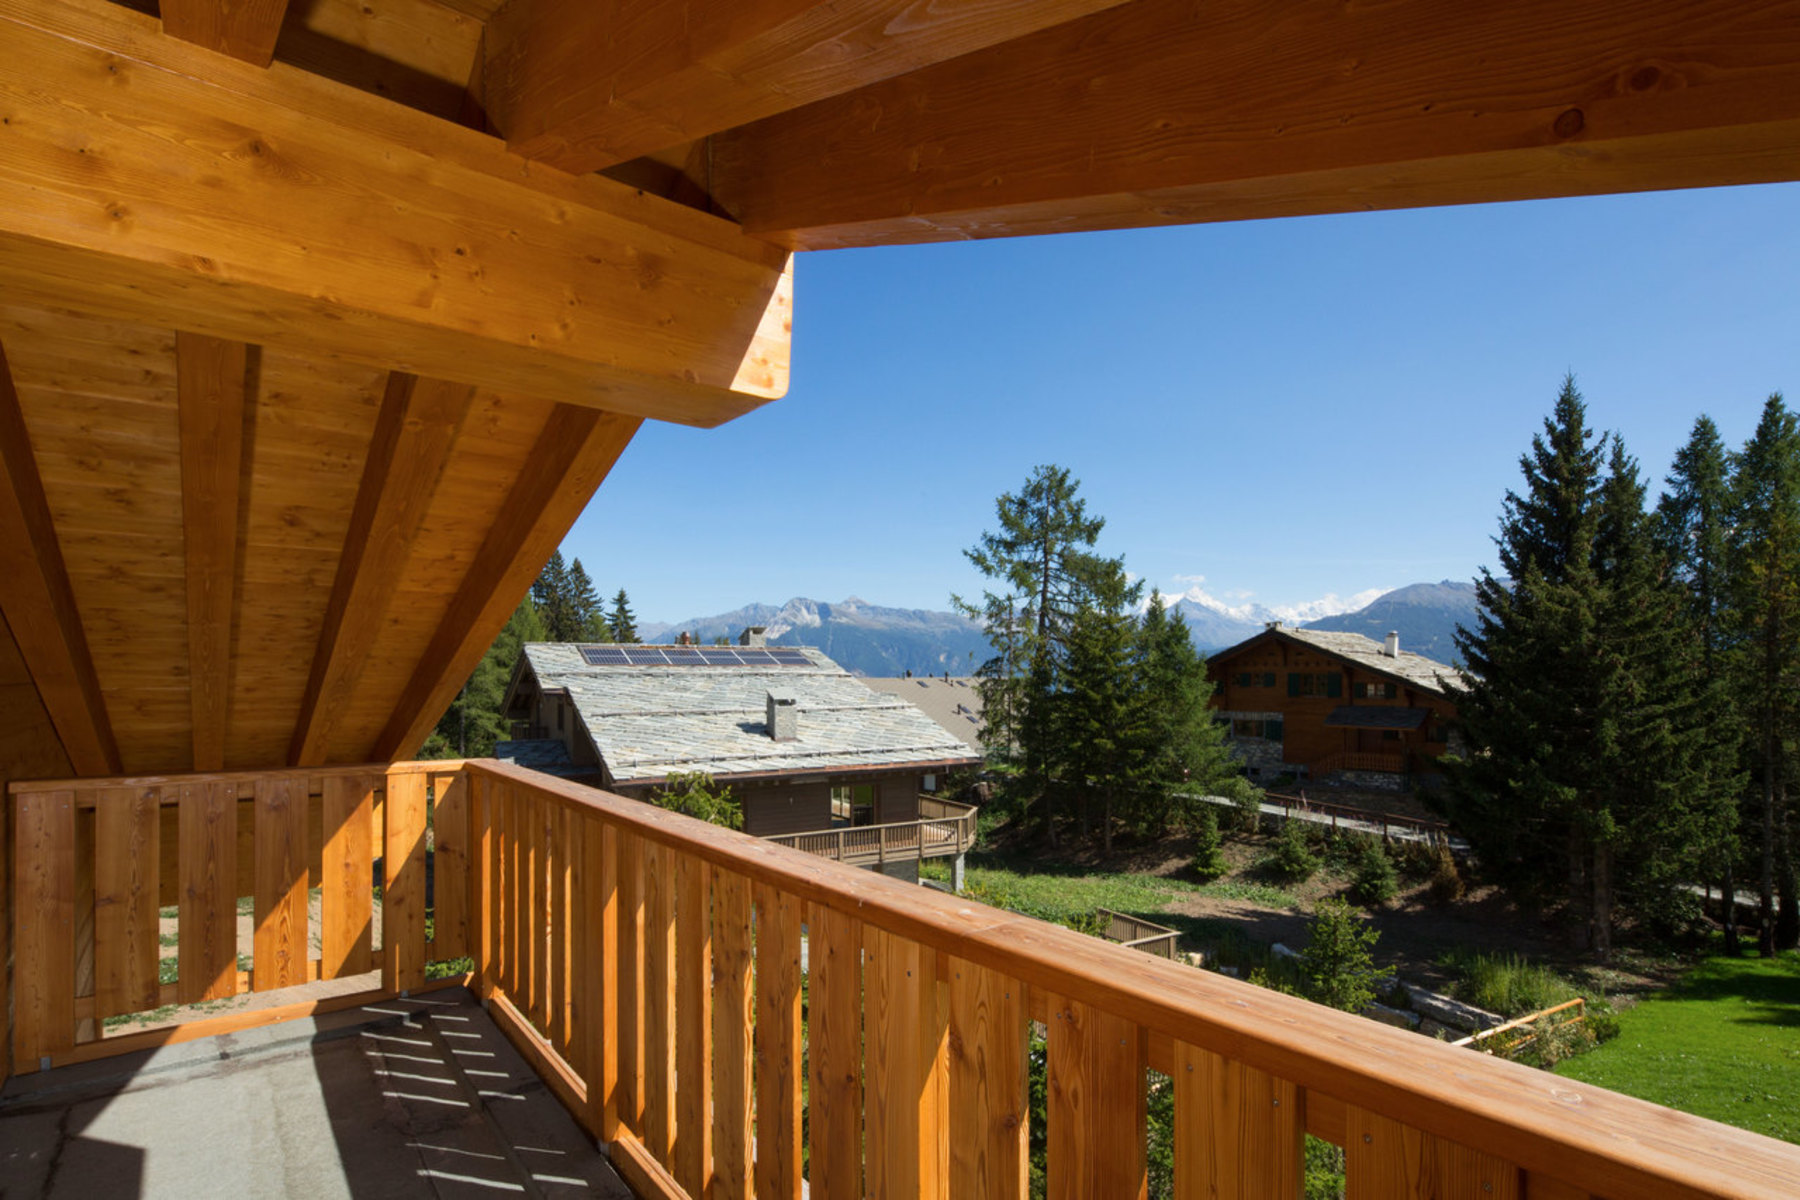 Additional photo for property listing at Magnificent new chalet in a rural setting in Plans-Mayens Crans-Montana Crans, Valais 3963 Suisse